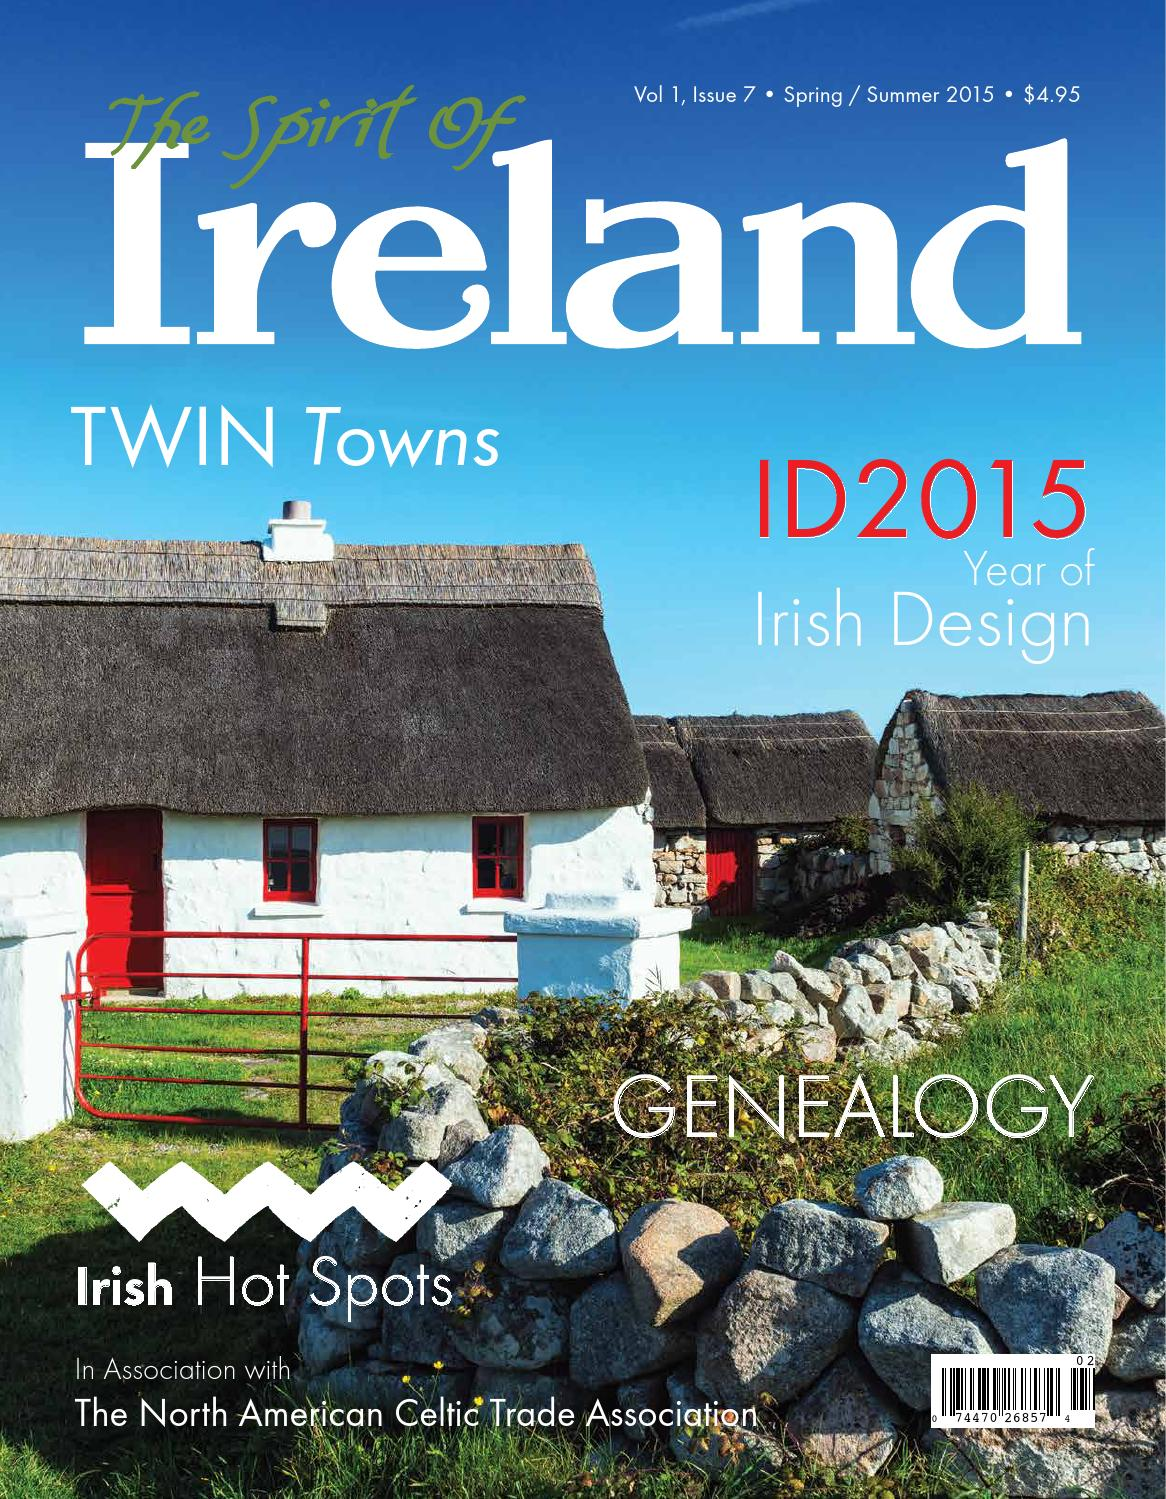 Spirit of ireland issue 7 by One Little Studio - issuu